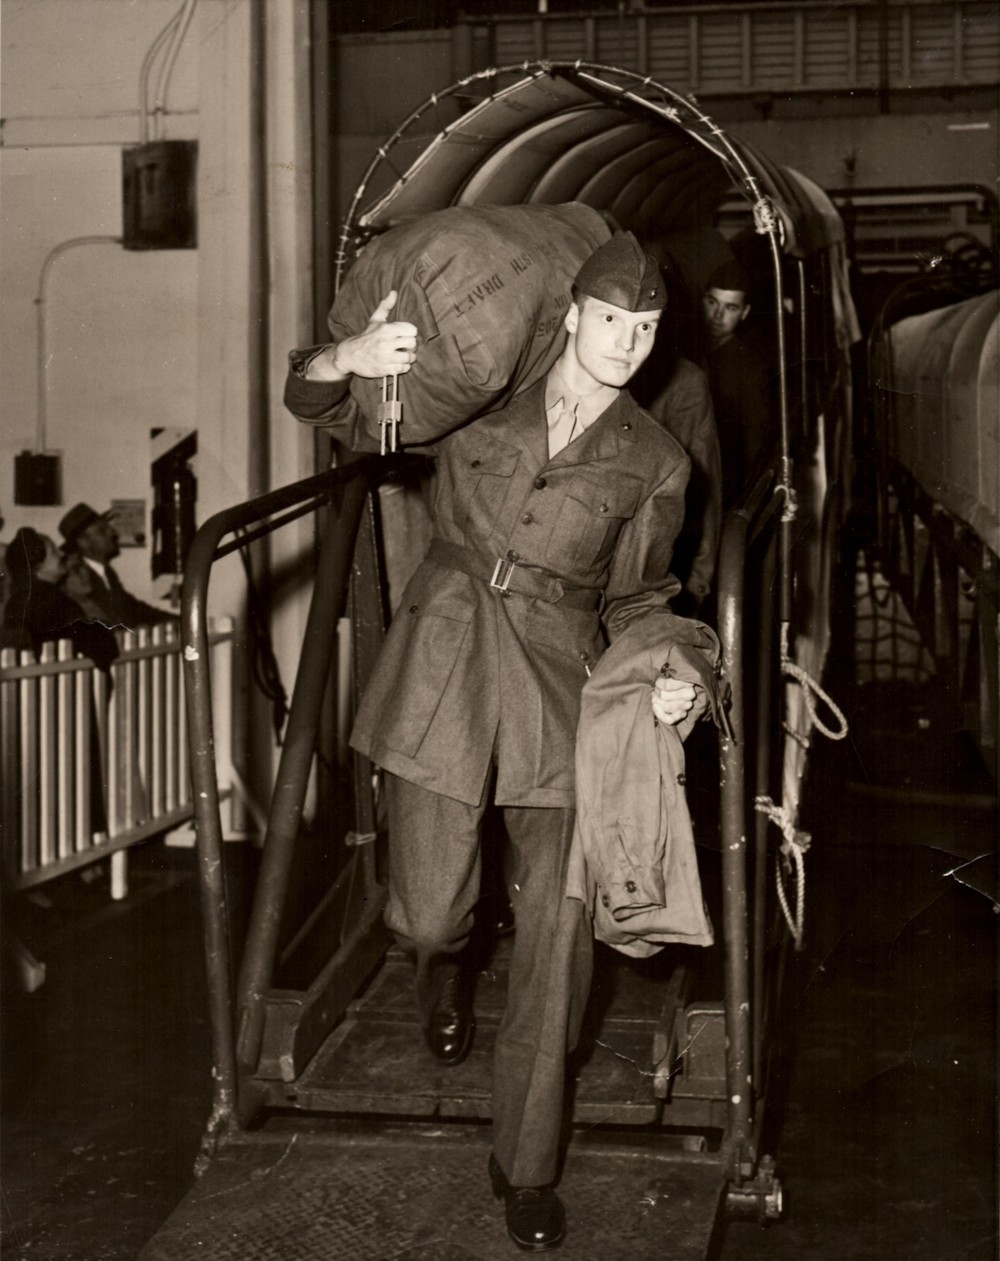 Home from Korea, Jim disembarks the  USNS General Gordon  in San Francisco, April 20, 1953.